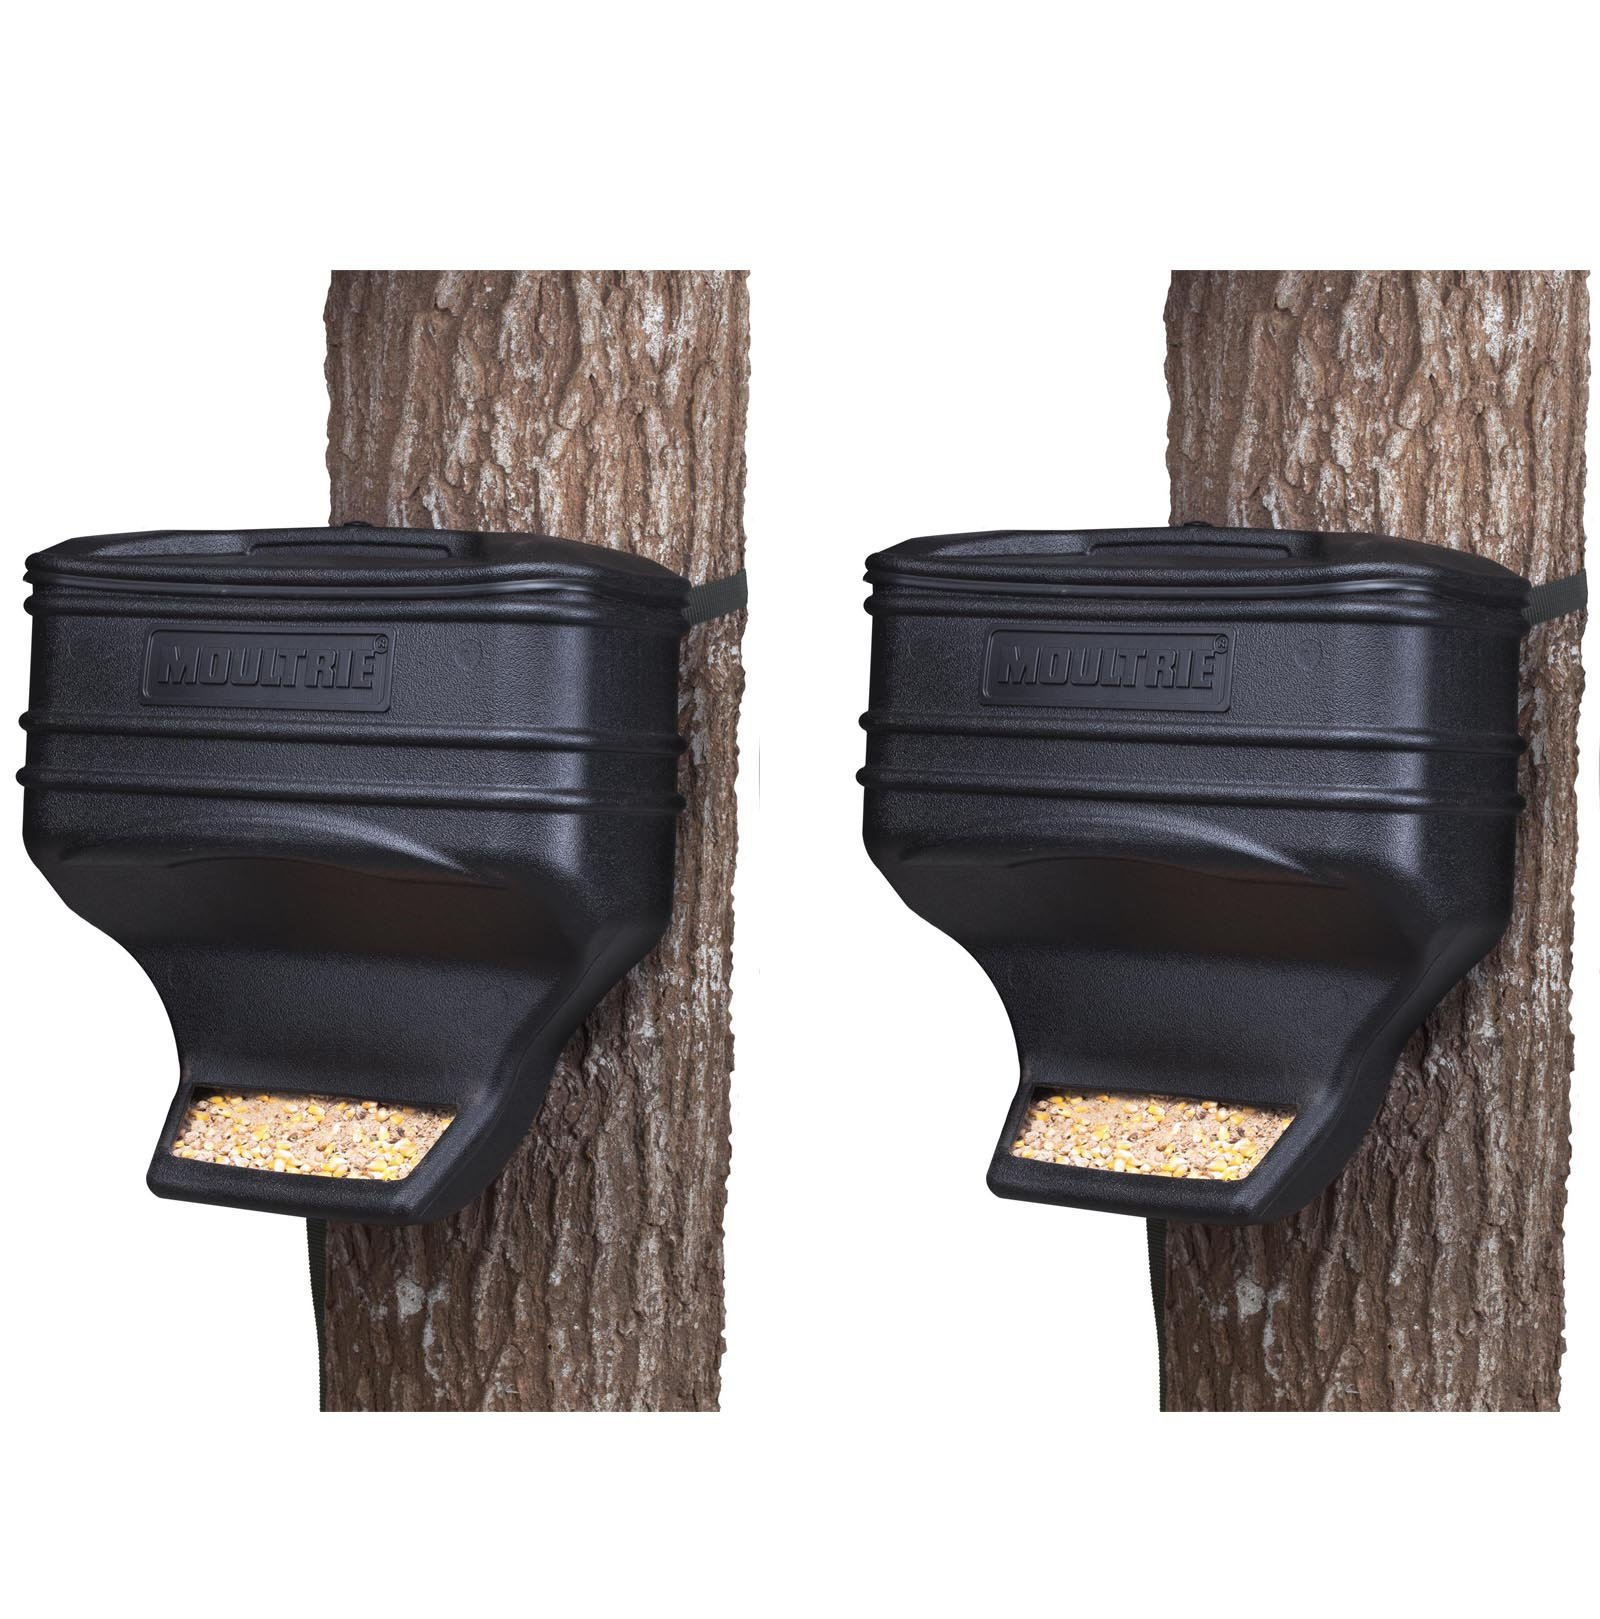 (2) Moultrie Feed Station Food Dispensing Gravity Deer Feeder Kits | MFG-13104